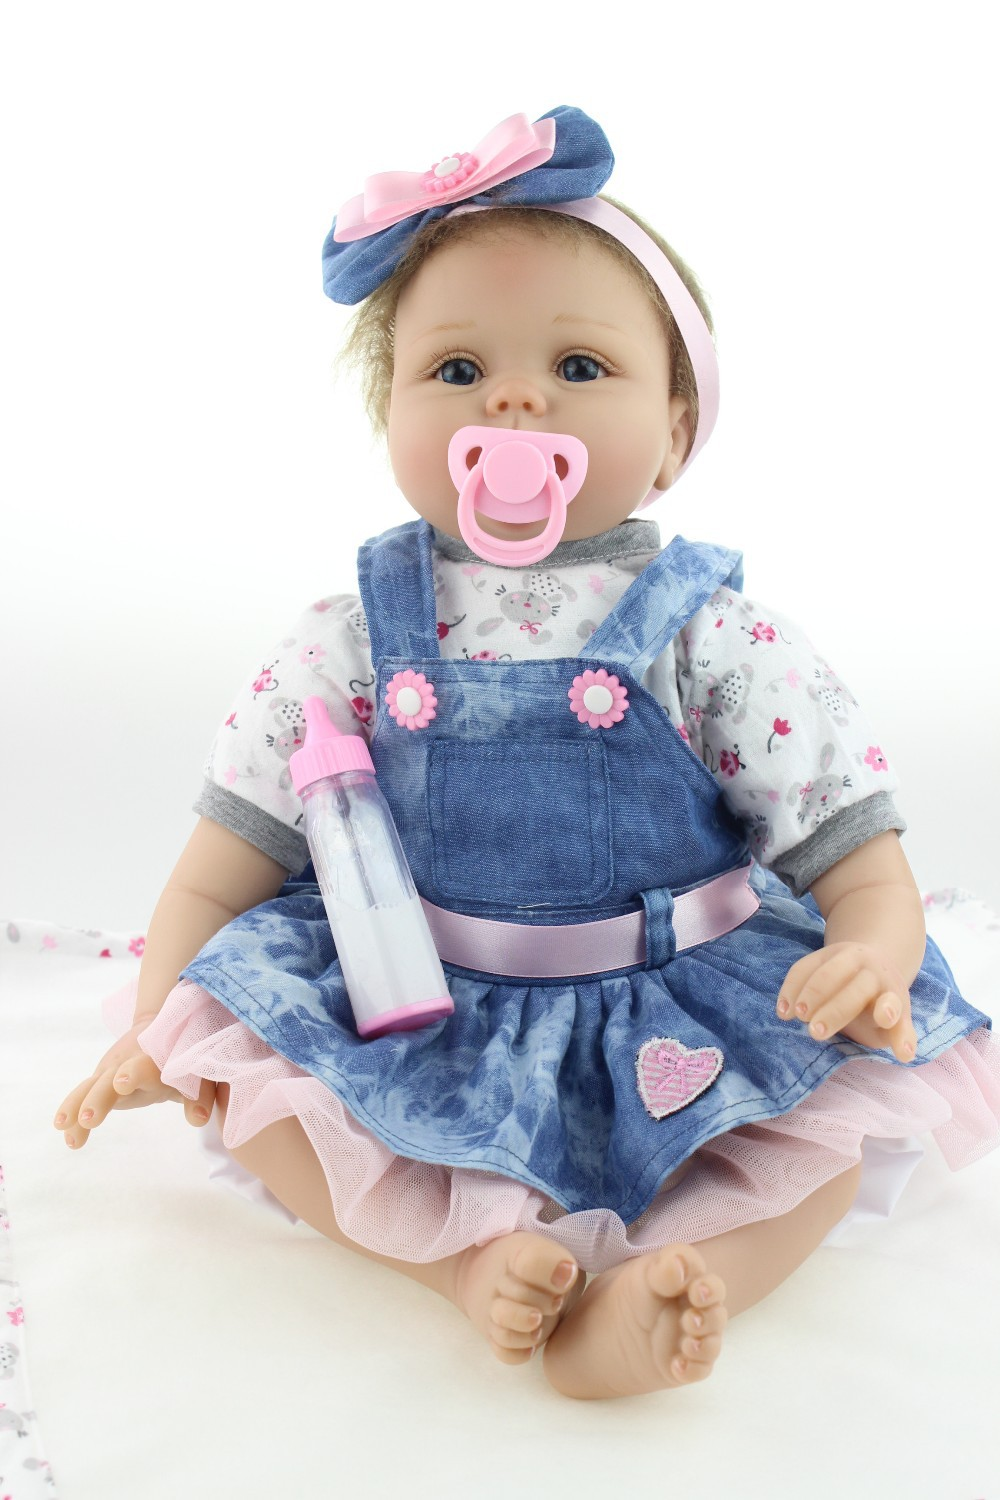 doll alive reborn doll with soft real gentle touch Free shipping 22inch reborn baby doll lifelike soft silicone vinyl free shipping 18 inches sleeping reborn baby doll handmade soft silicone vinyl baby alive doll lifelike hot toys 100